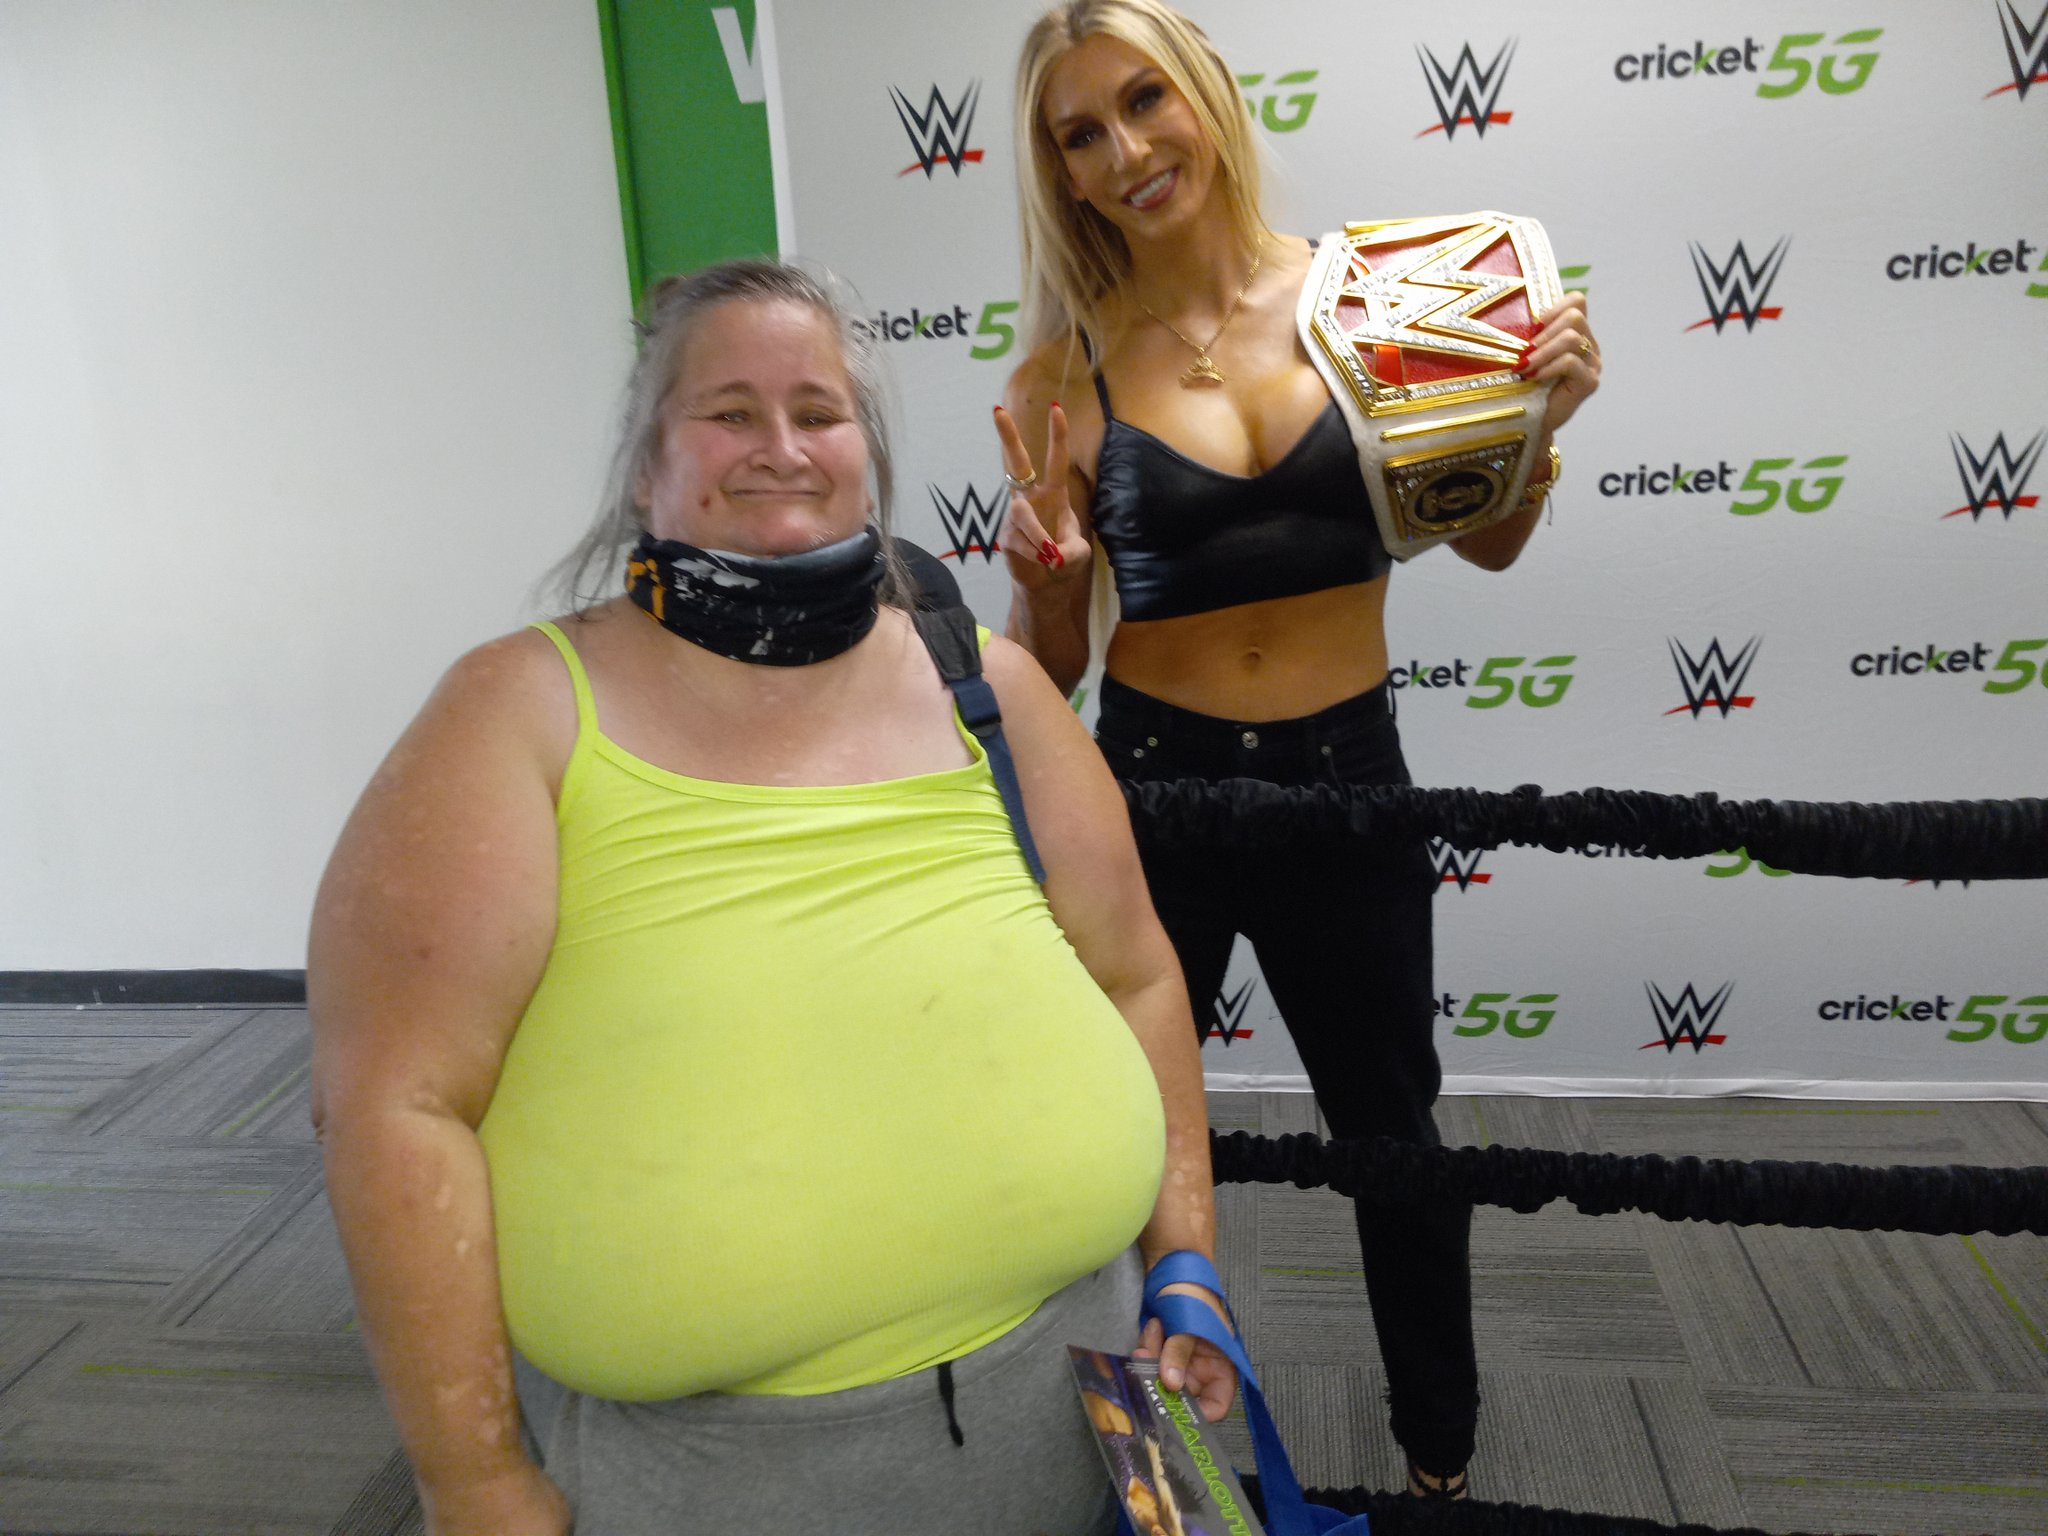 Charlotte Flair Shares Stunning Photos From WWE Raw Attendance 146